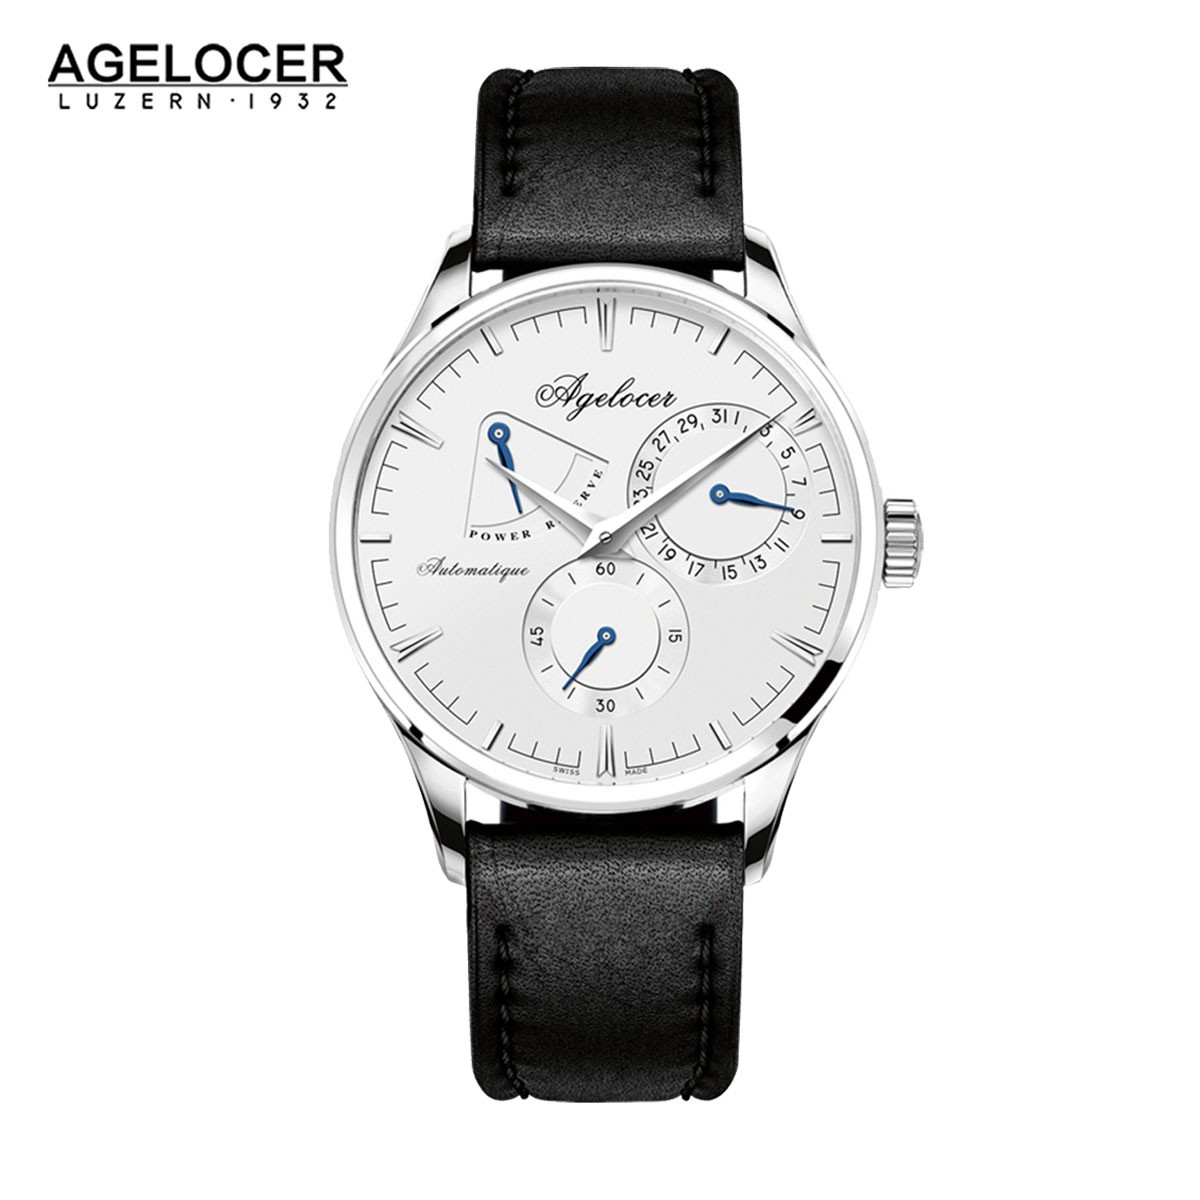 Agelocer Budapest 40mm Steel 4101A1